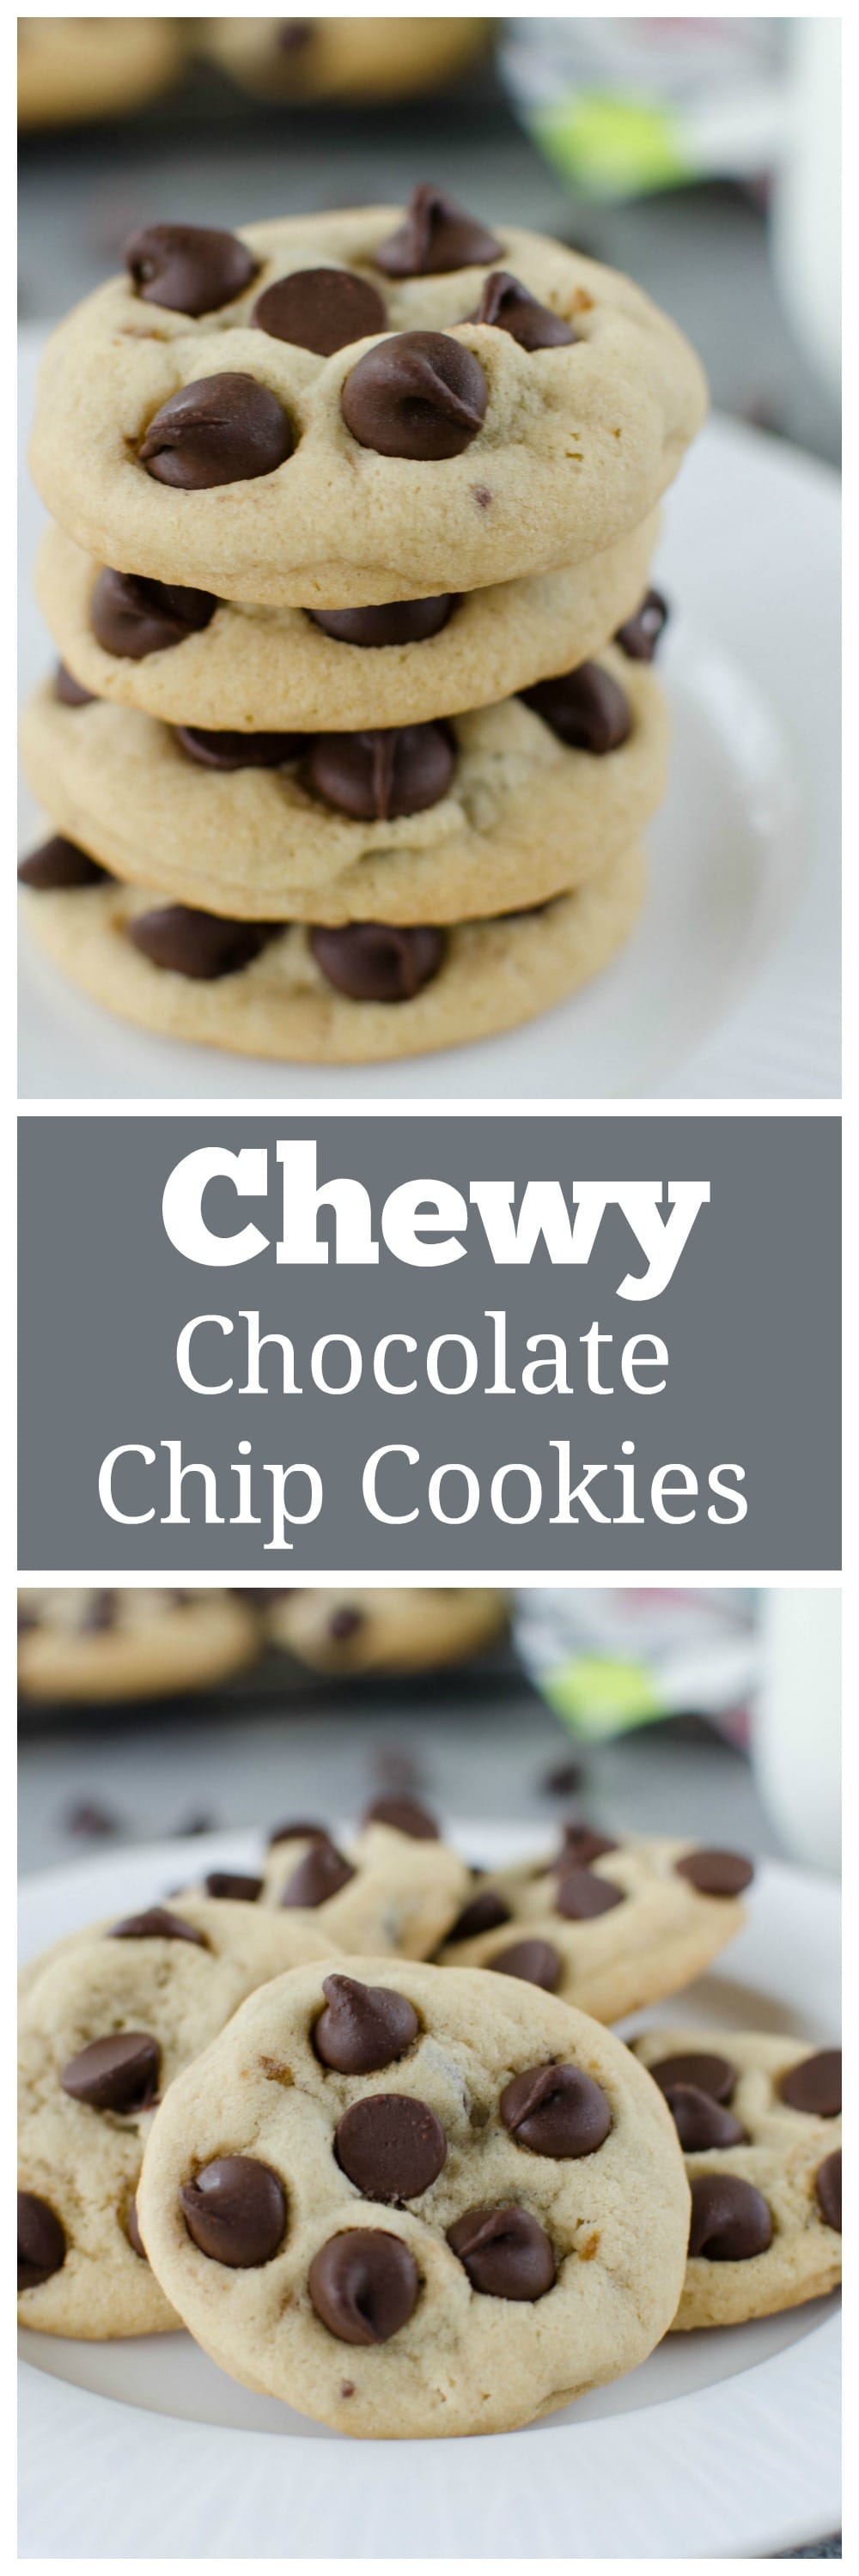 Chewy Chocolate Chip Cookies - the BEST recipe to get soft and chewy chocolate chip cookies! You will never make another chocolate chip cookie recipe.